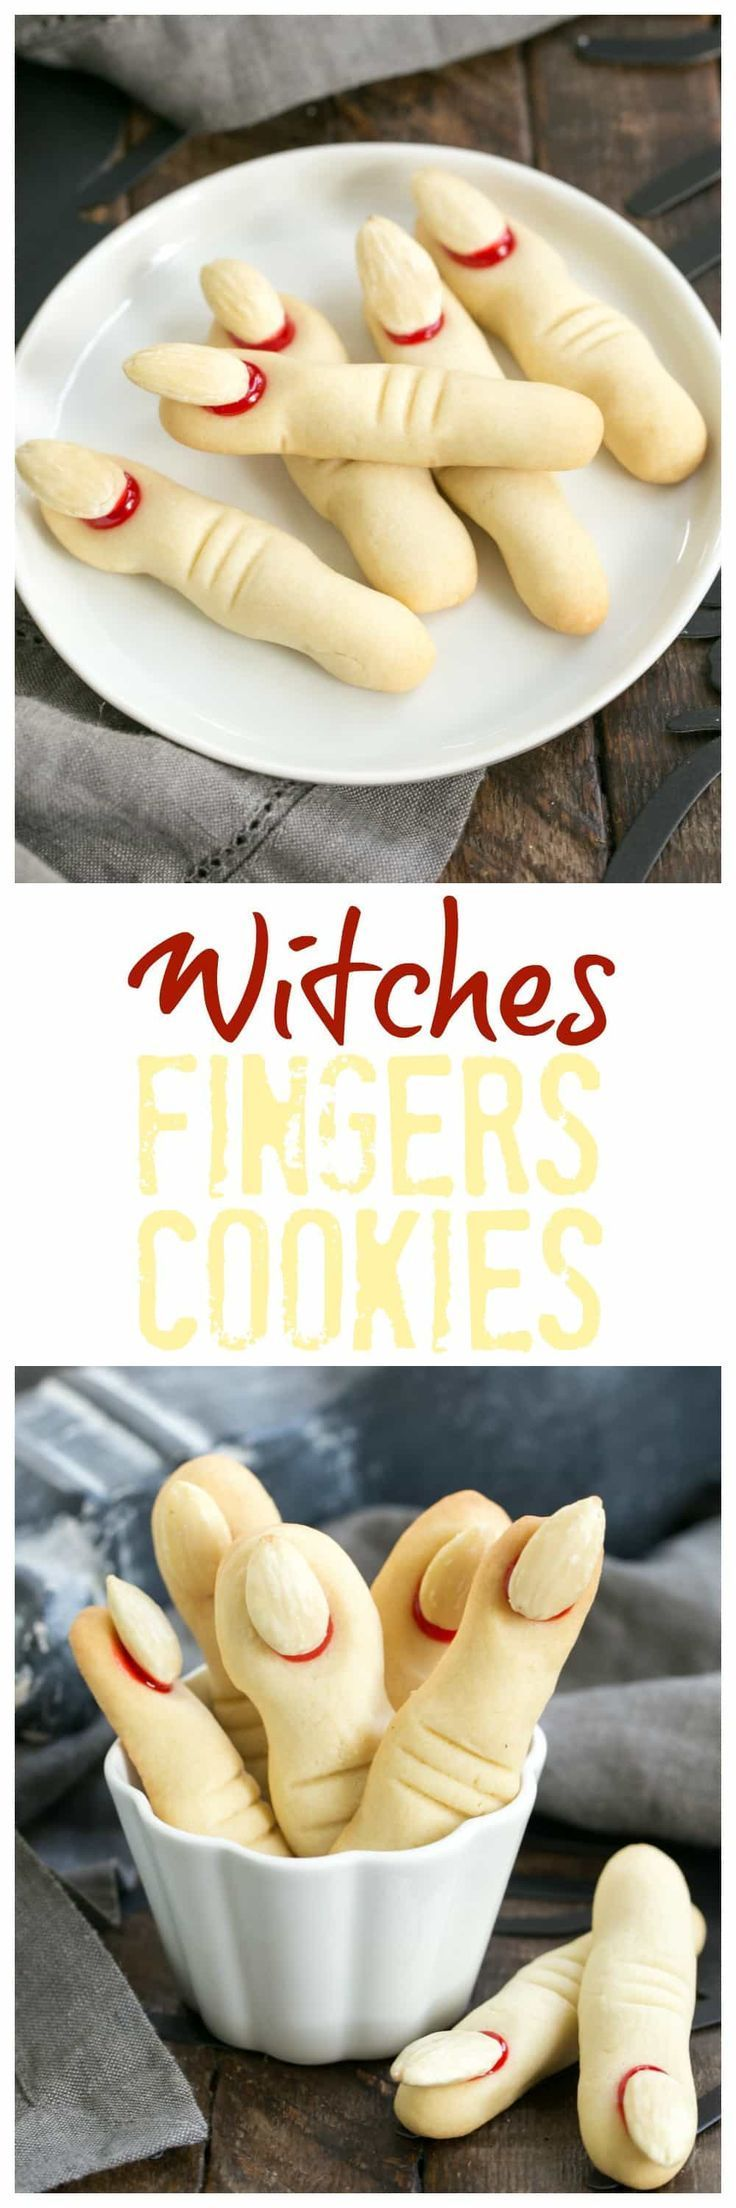 Witches Fingers Cookies | A simple recipe to transform sugar cookie dough into gnarly fingers for Halloween! #halloween #cookies